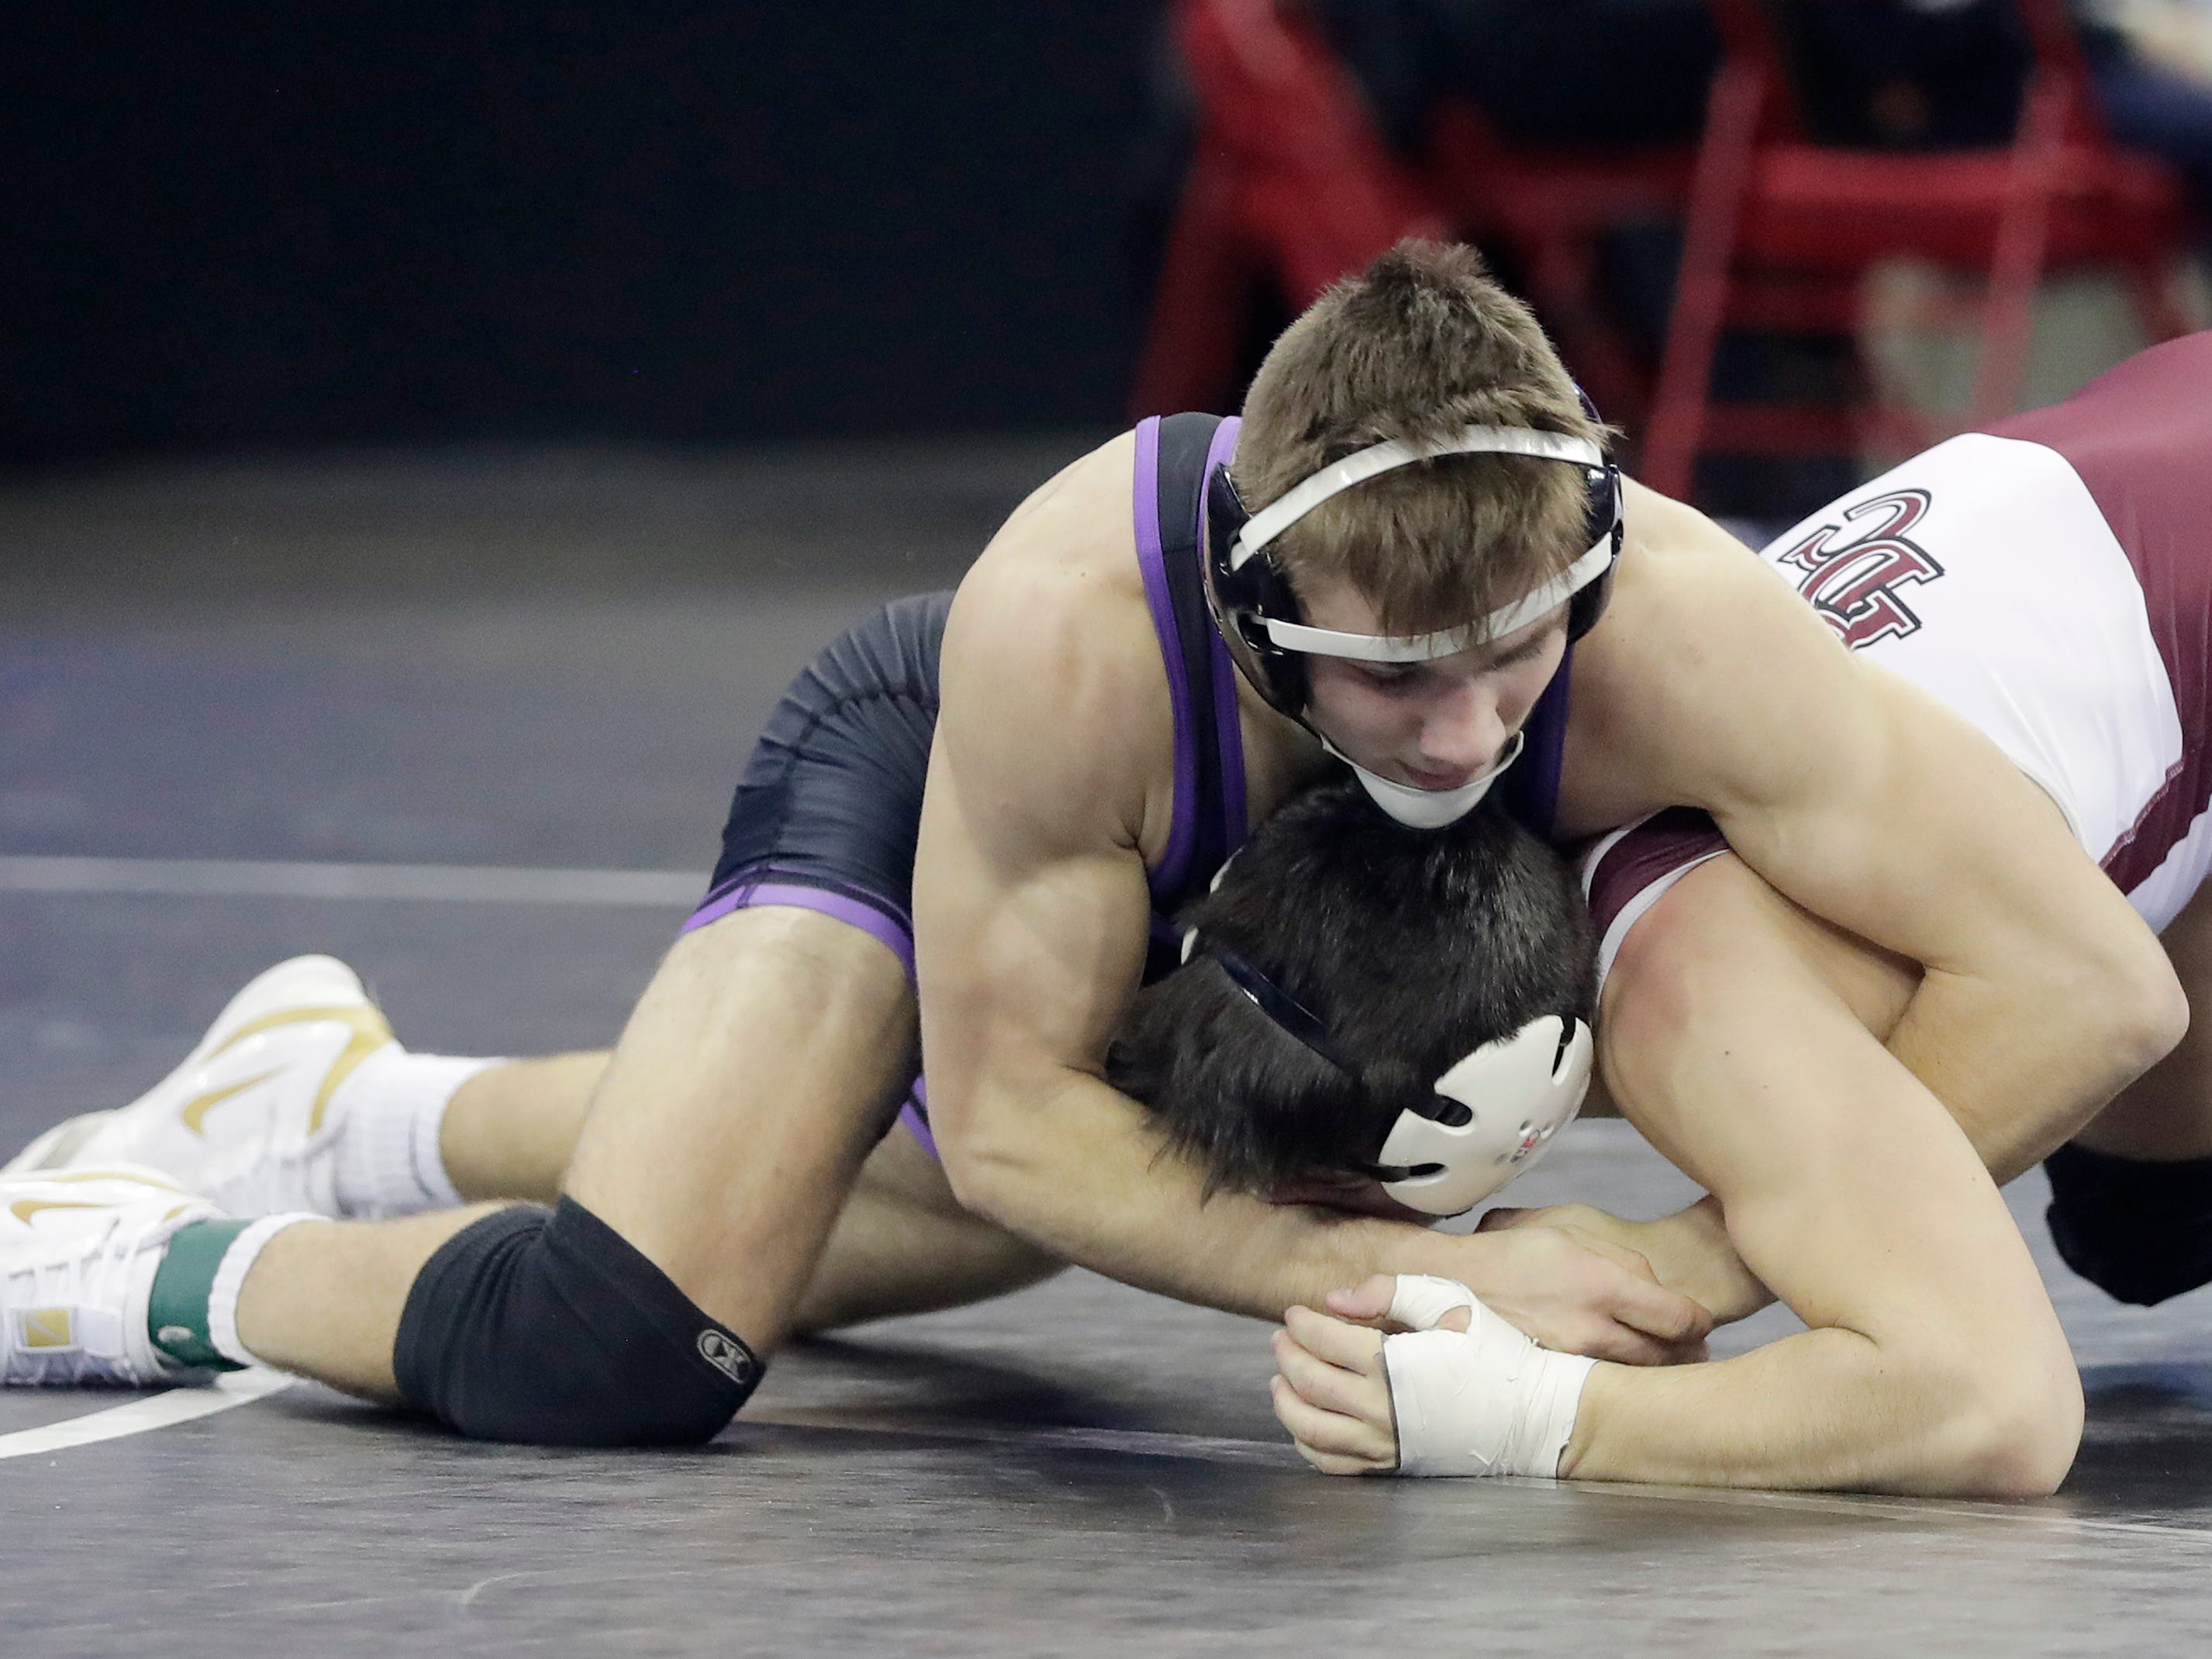 Mosinee's Gage Coppock wrestles in a Division 2 152-pound preliminary match at the WIAA state individual wrestling tournament at the Kohl Center on Thursday, February 21, 2019 in Madison, Wis.